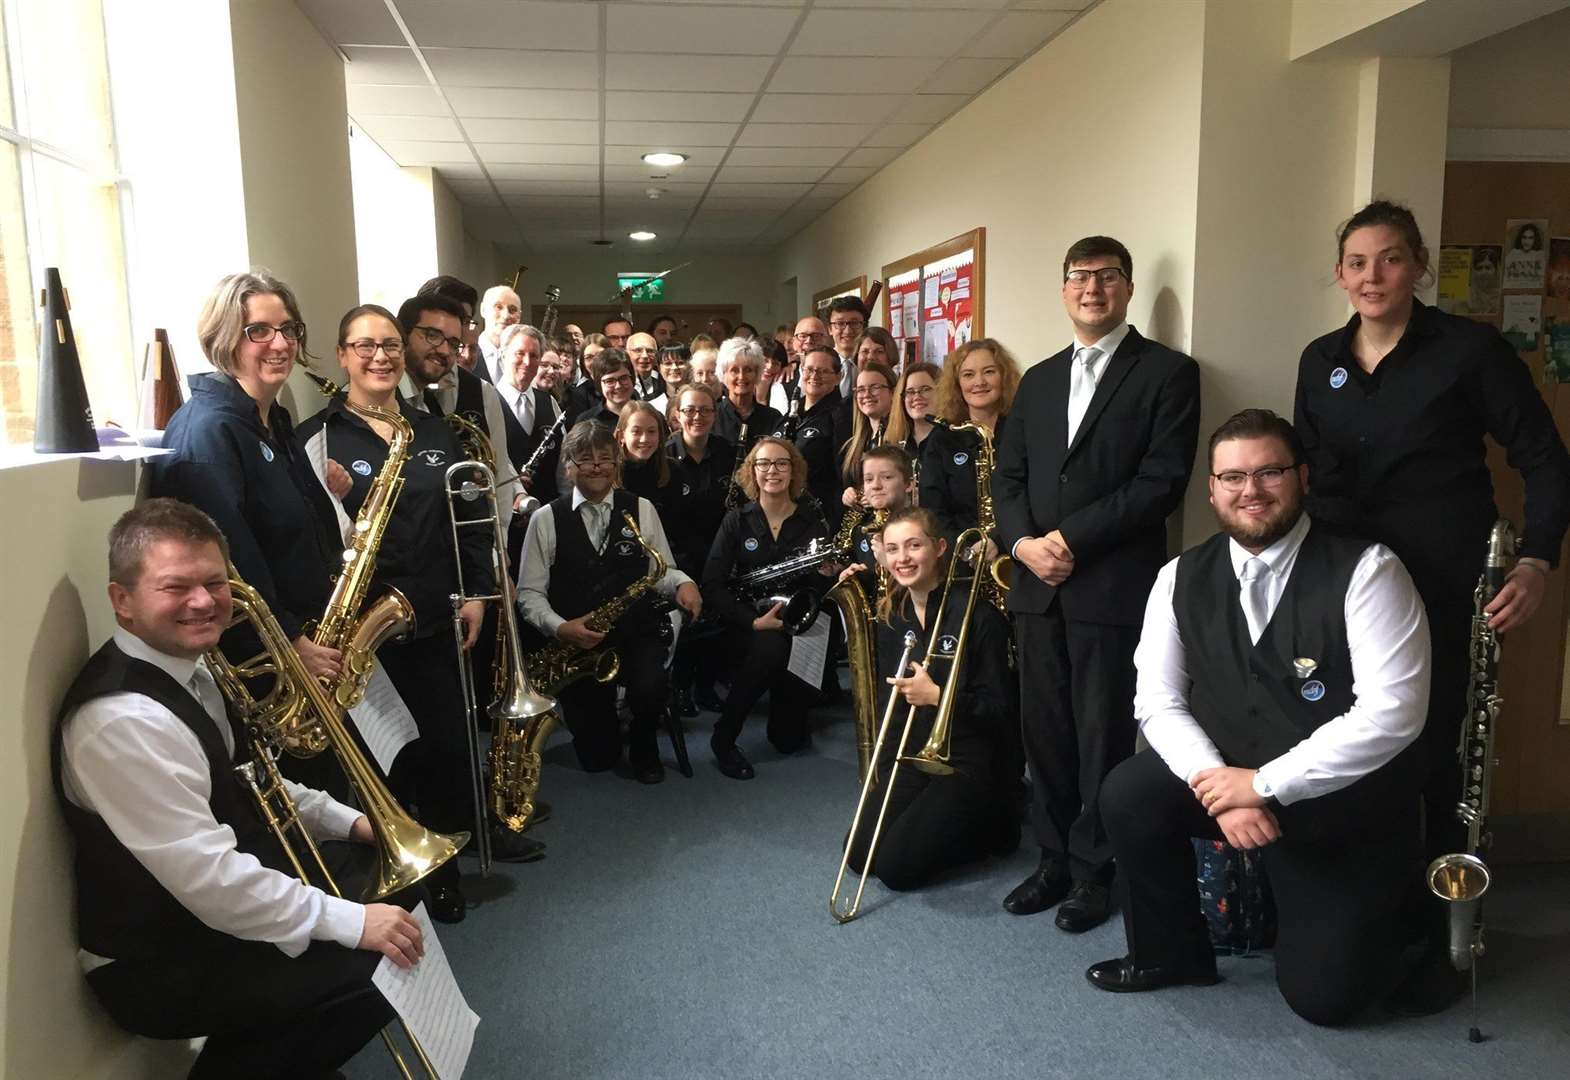 Winter Concert hopes to wow town